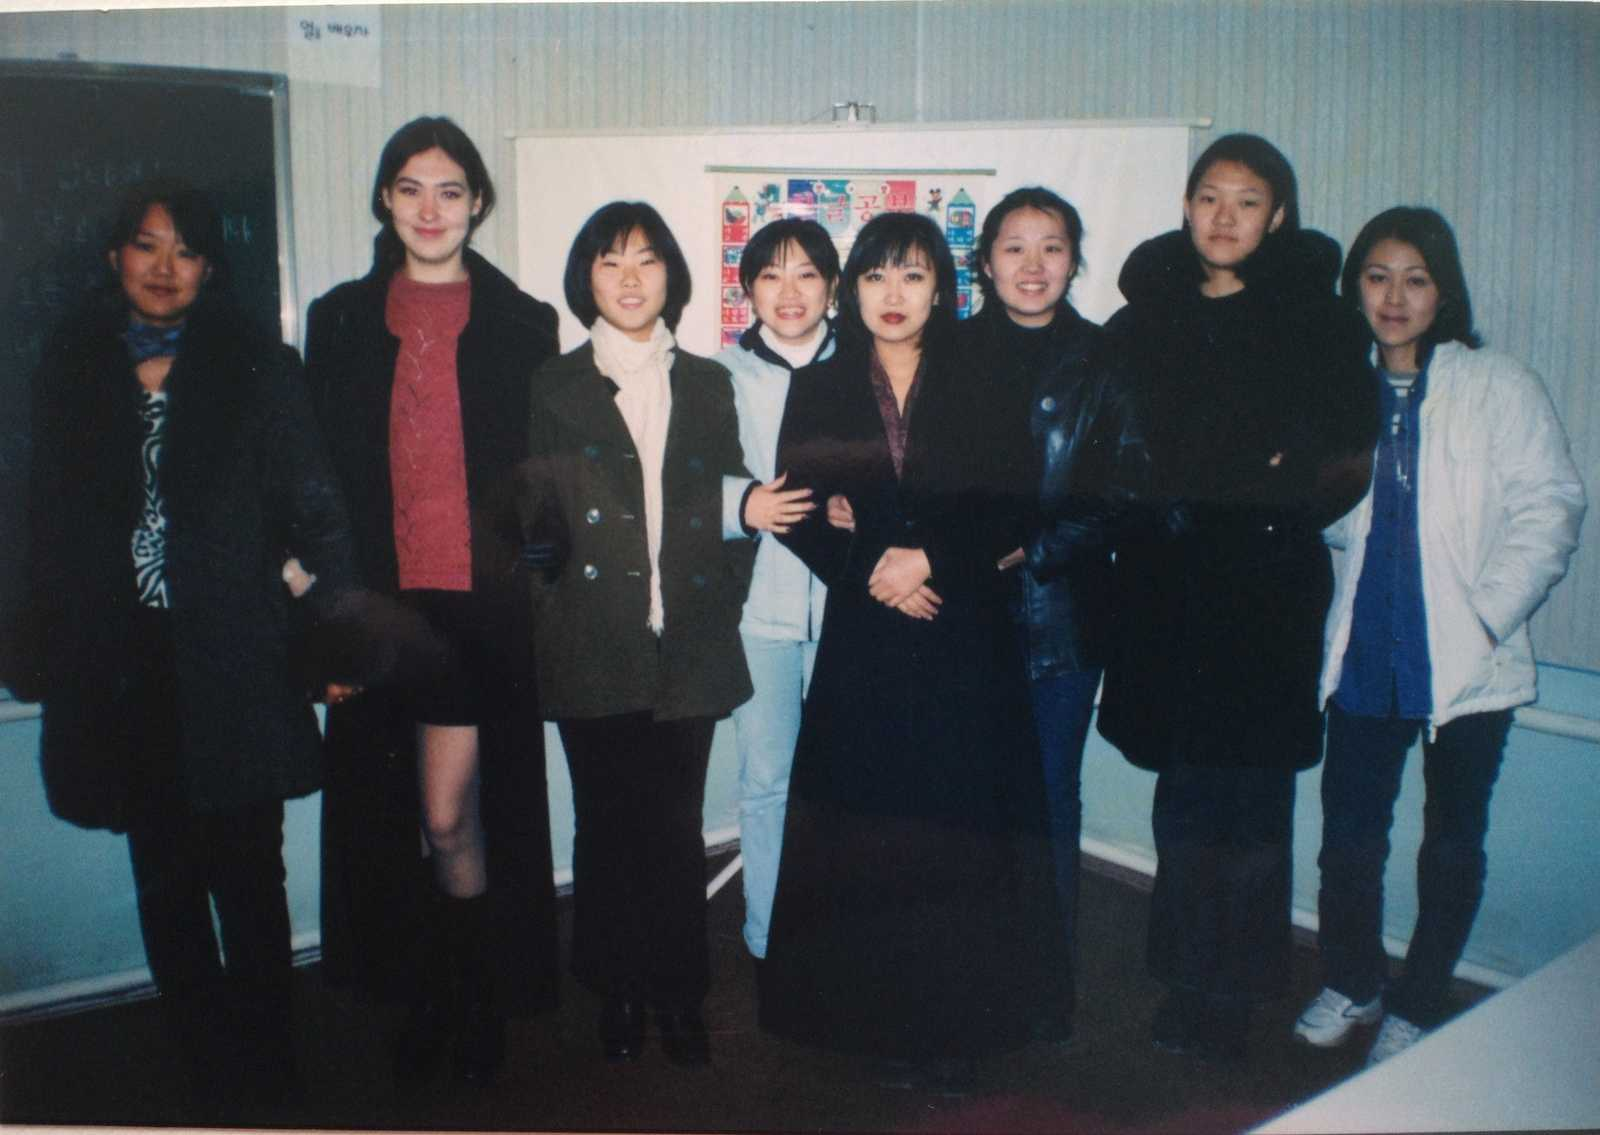 Studying Korean together with my Korean classmates in Tashkent in the early 2000s